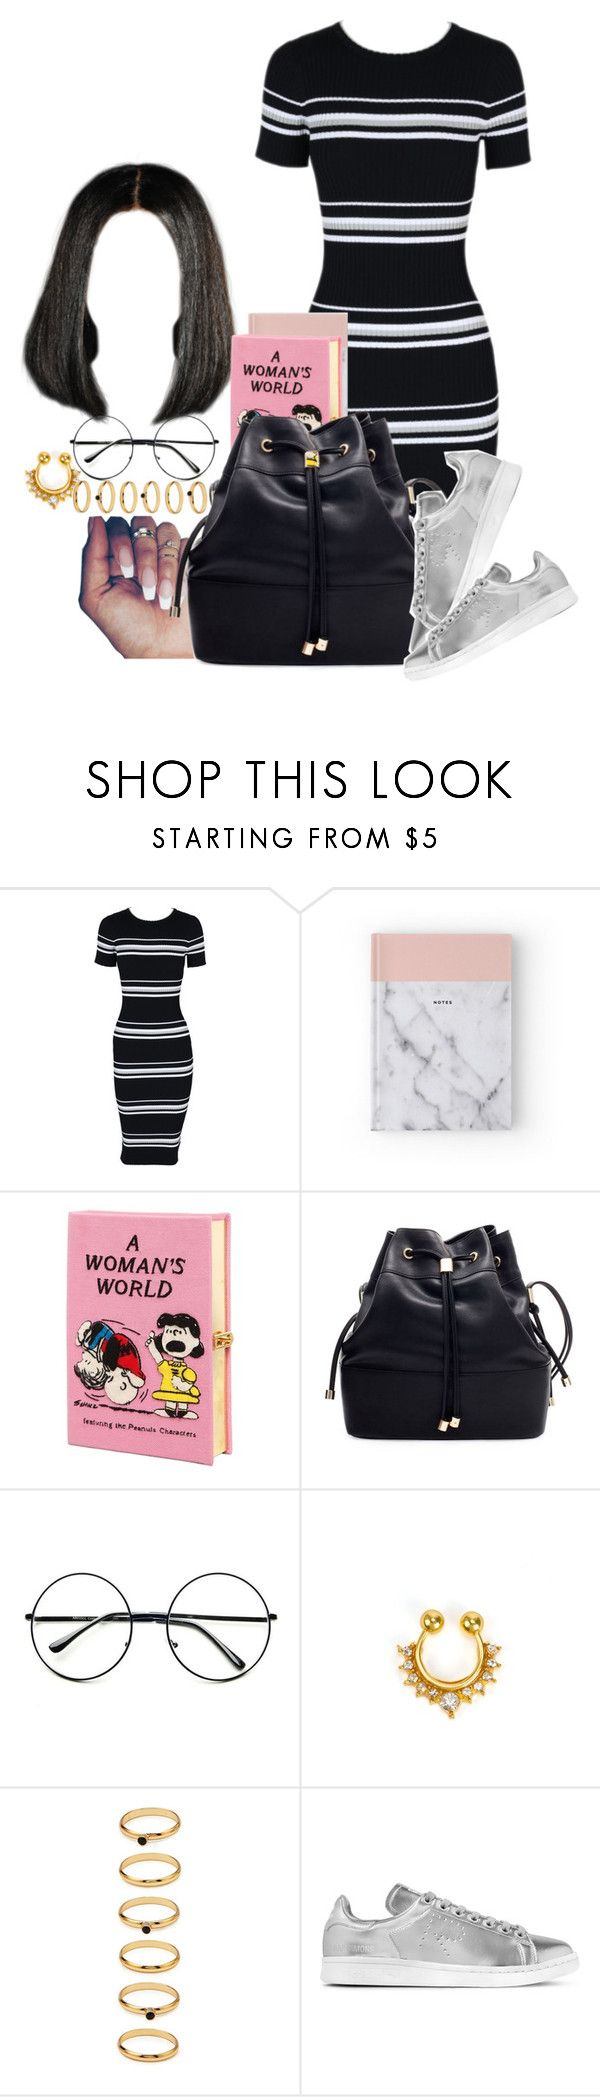 """""""Lunch at the Cafe"""" by melaninprincess-16 ❤ liked on Polyvore featuring MINKPINK, Olympia Le-Tan, Retrò, NLY Accessories, Forever 21 and adidas Originals"""